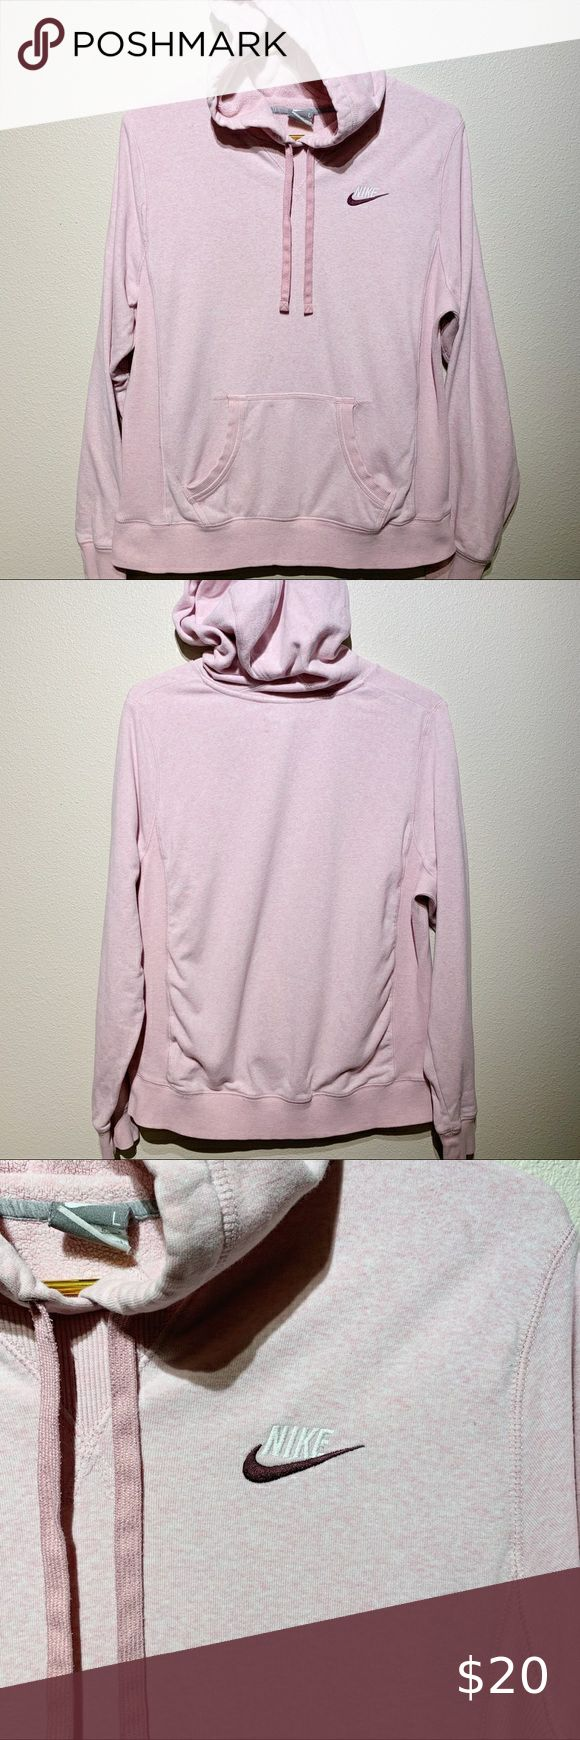 Girl's NIKE Vintage Hoodie Large/Oversized Small in 2020